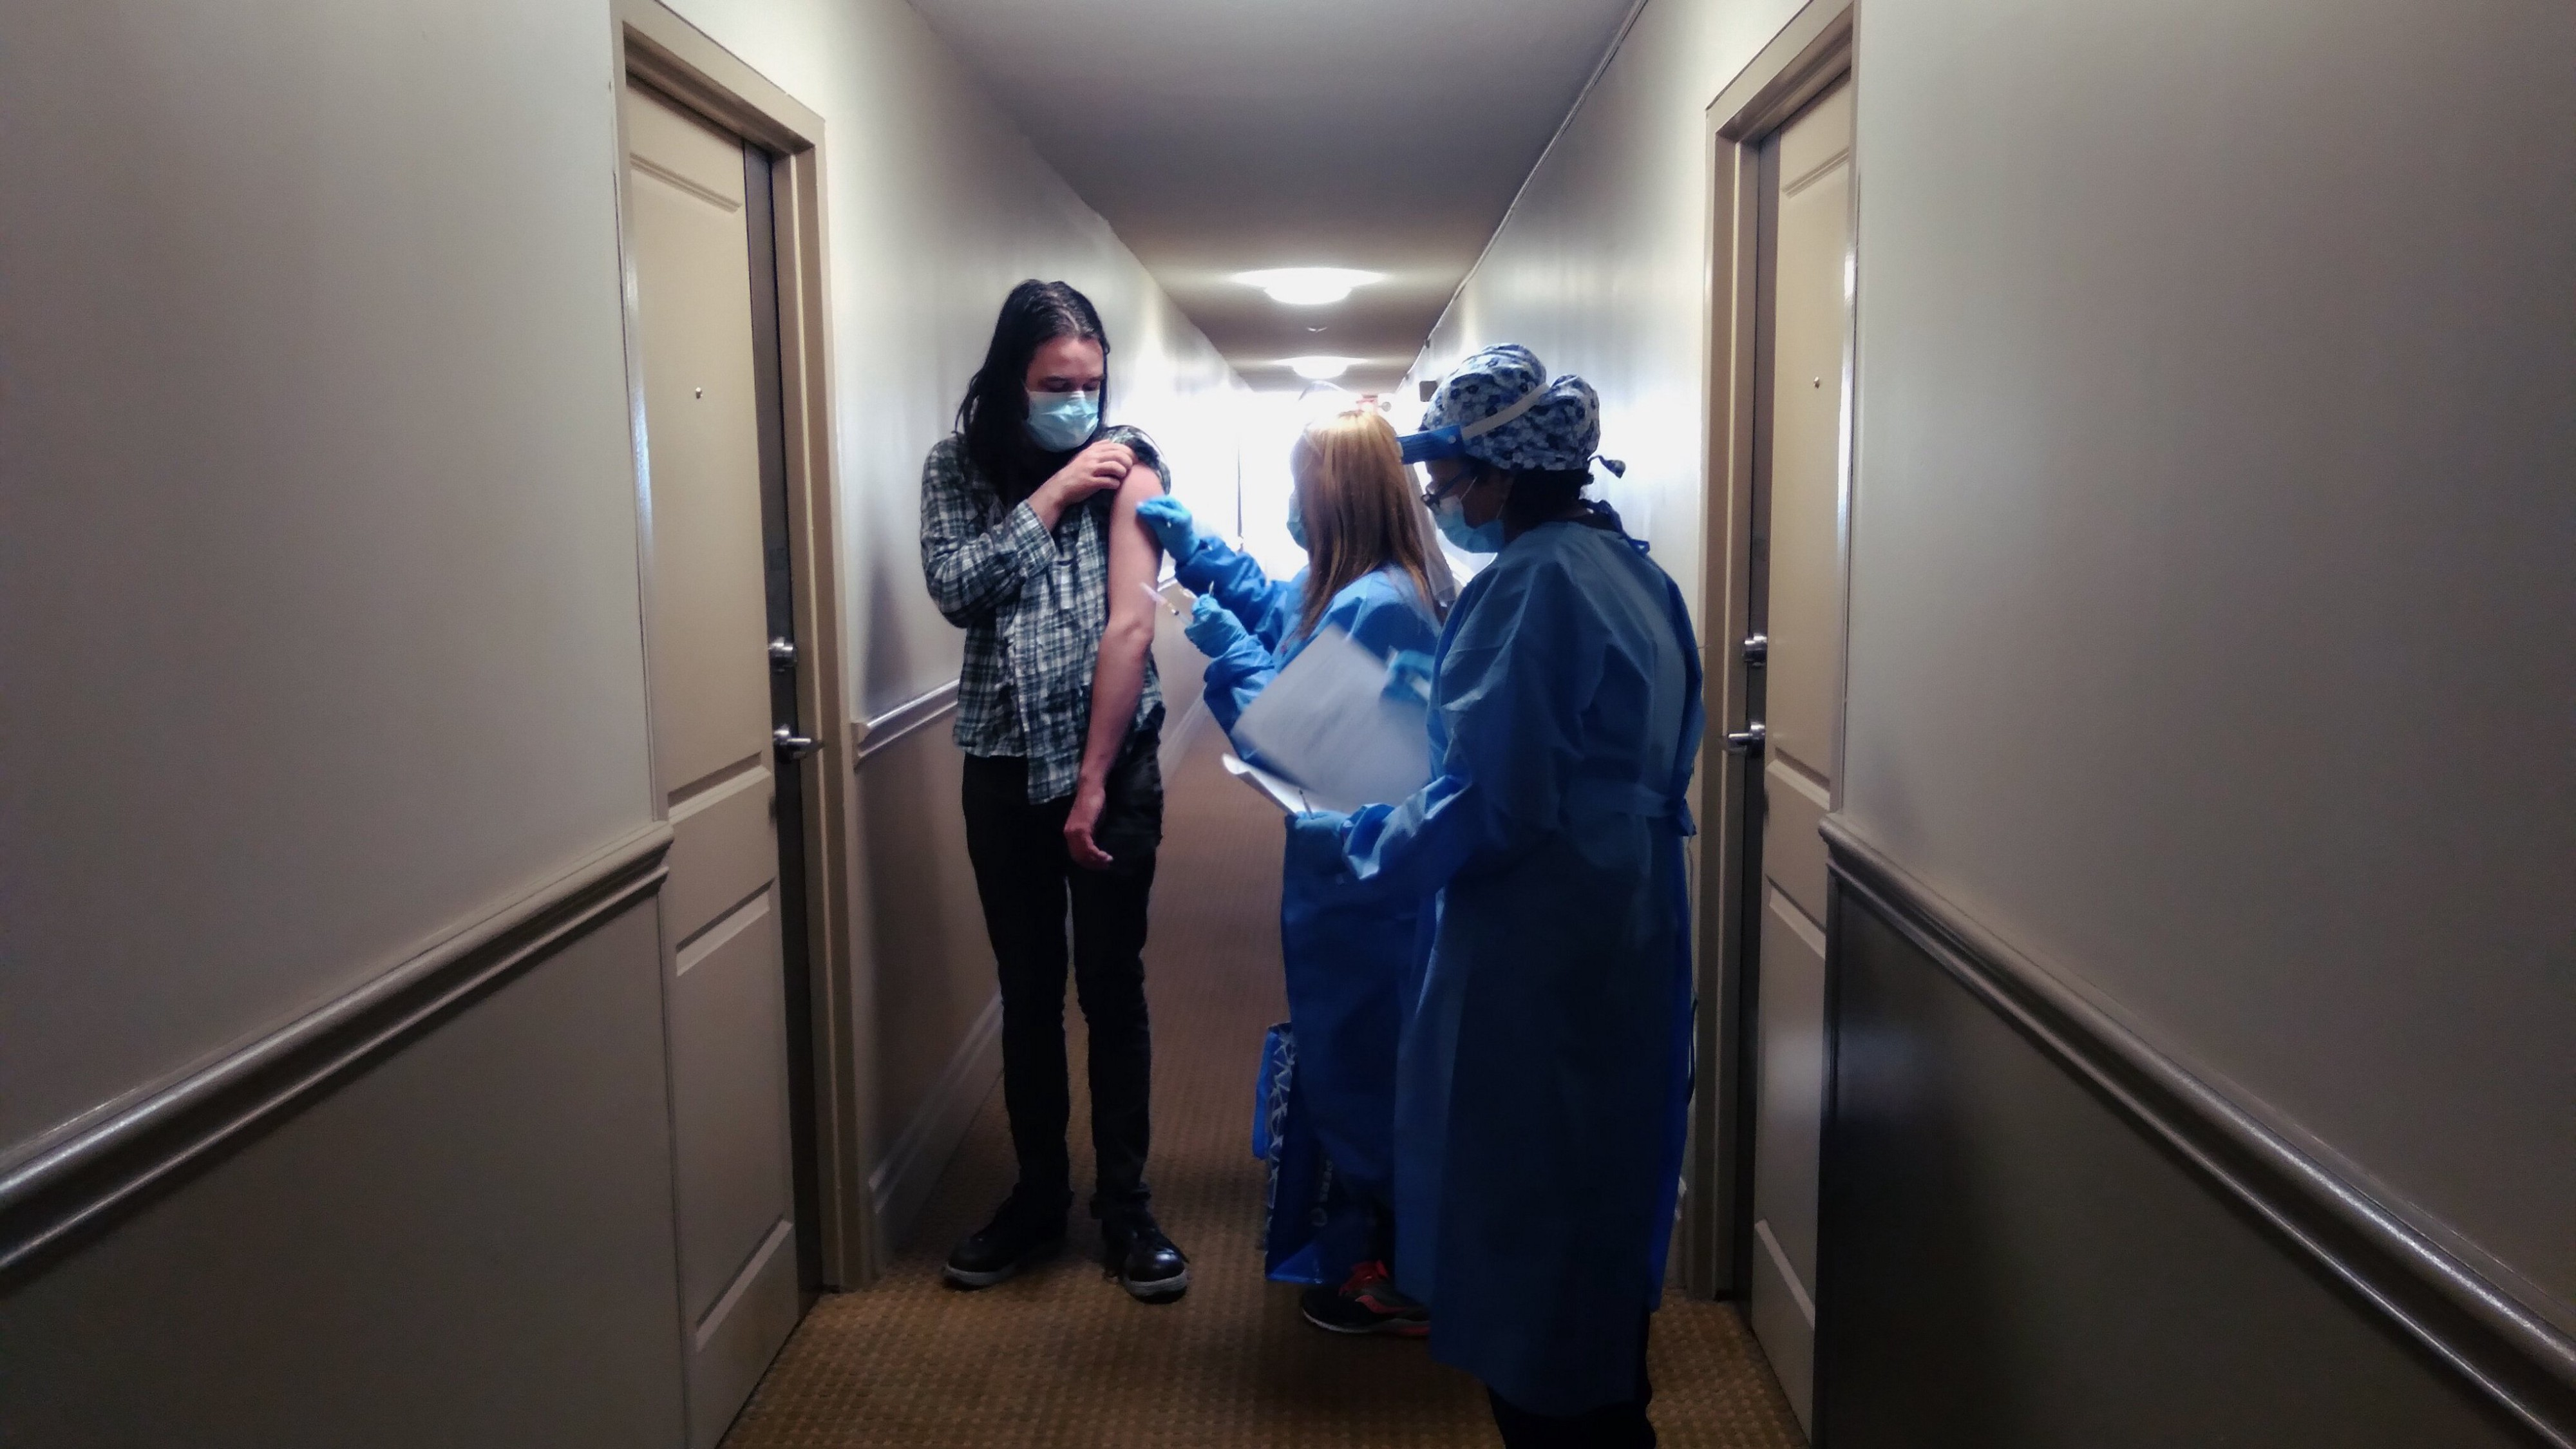 woman in hallway rolls up sleeve as two workers in PPE stand by